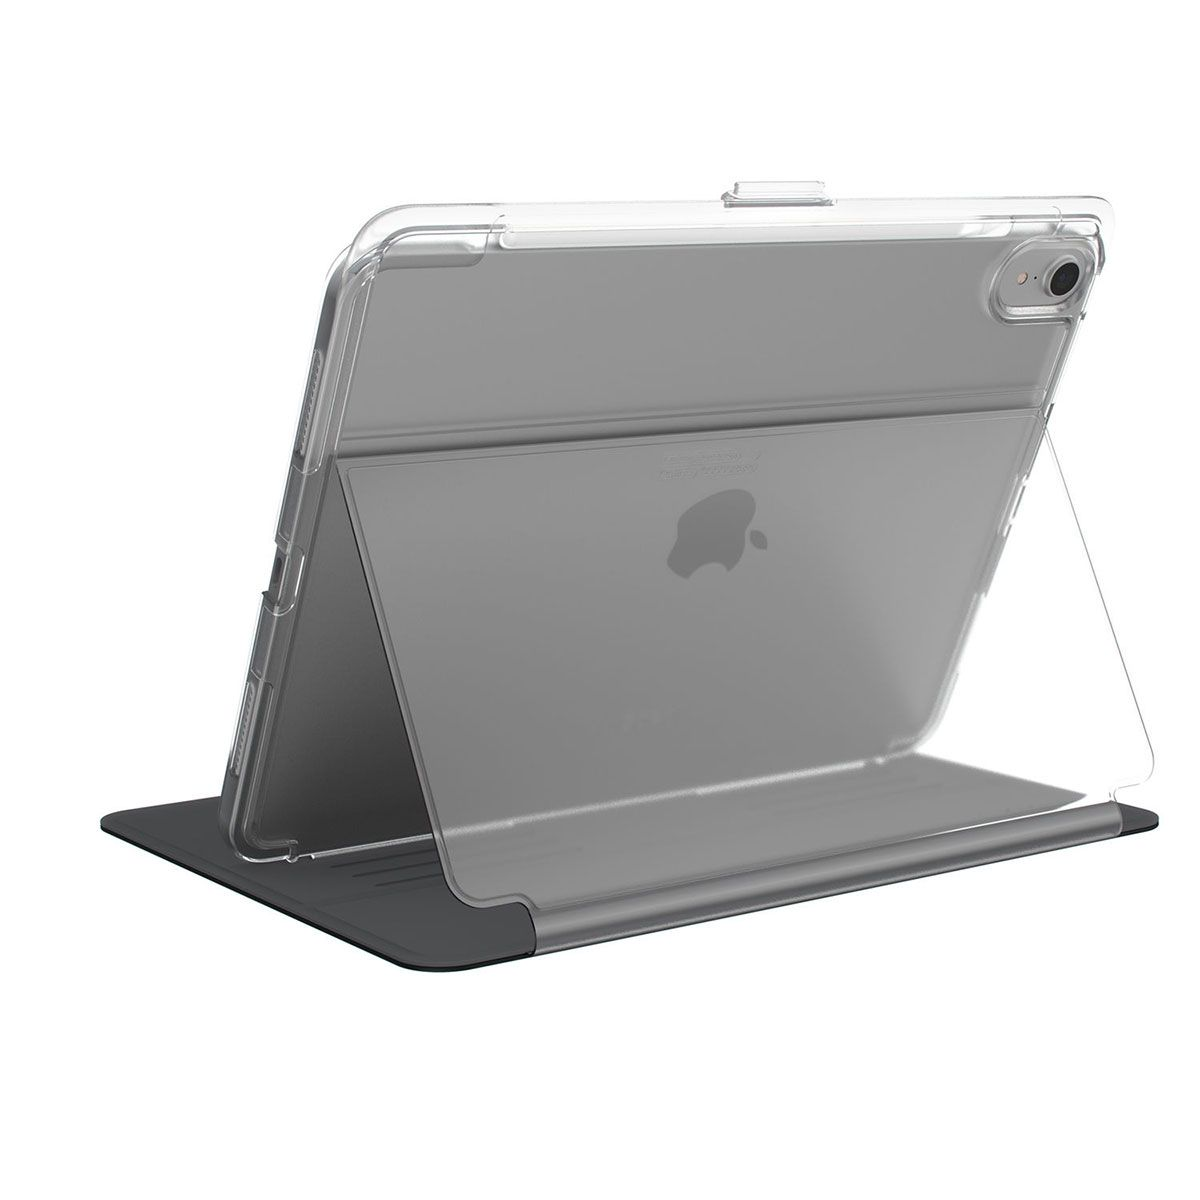 superior quality 45221 674b0 Speck Balance Folio Clear Black 11-Inch iPad Pro Cases